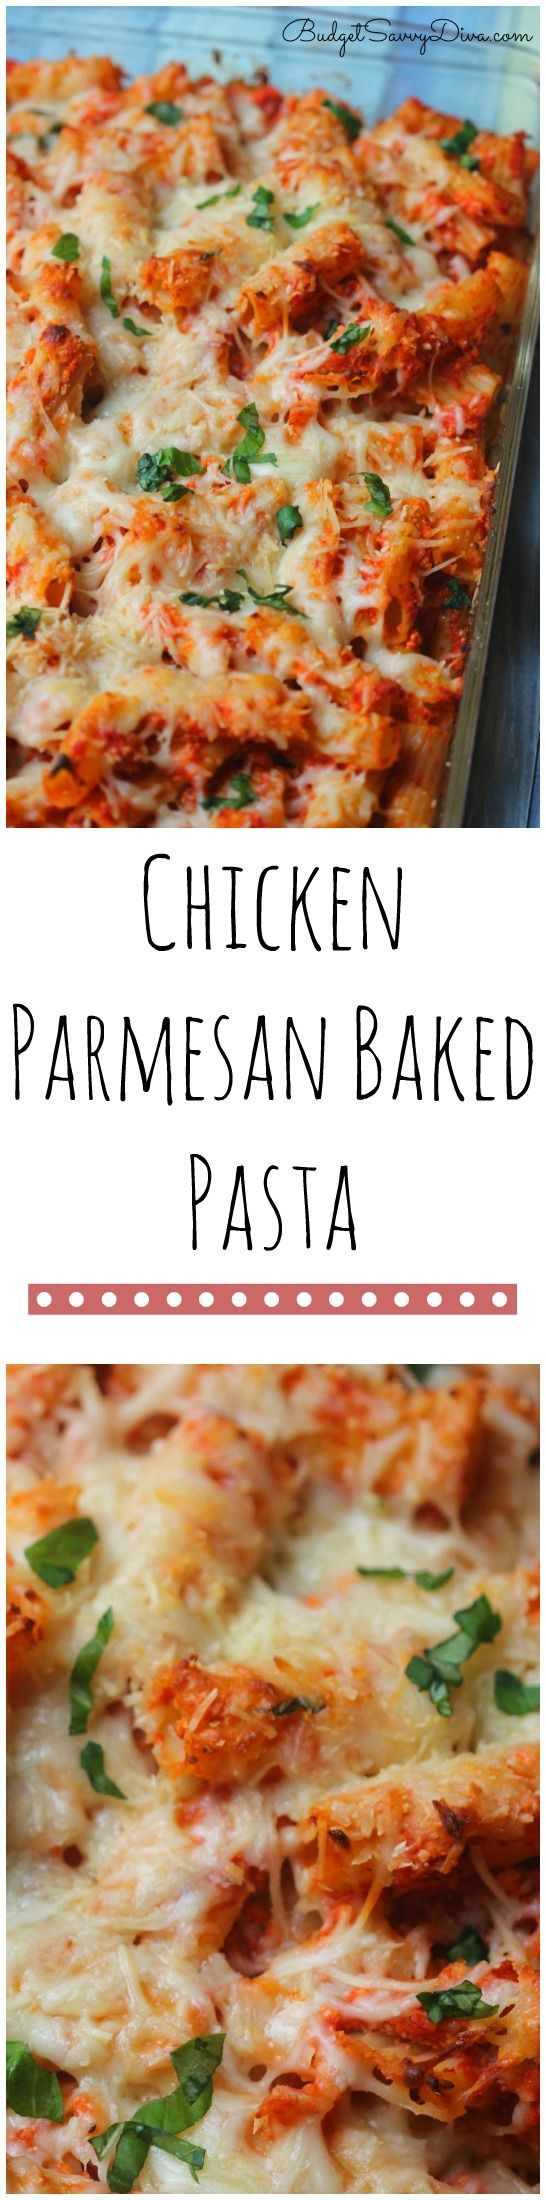 Chicken Parmesan Baked Pasta Recipe from Budget Savvy Diva